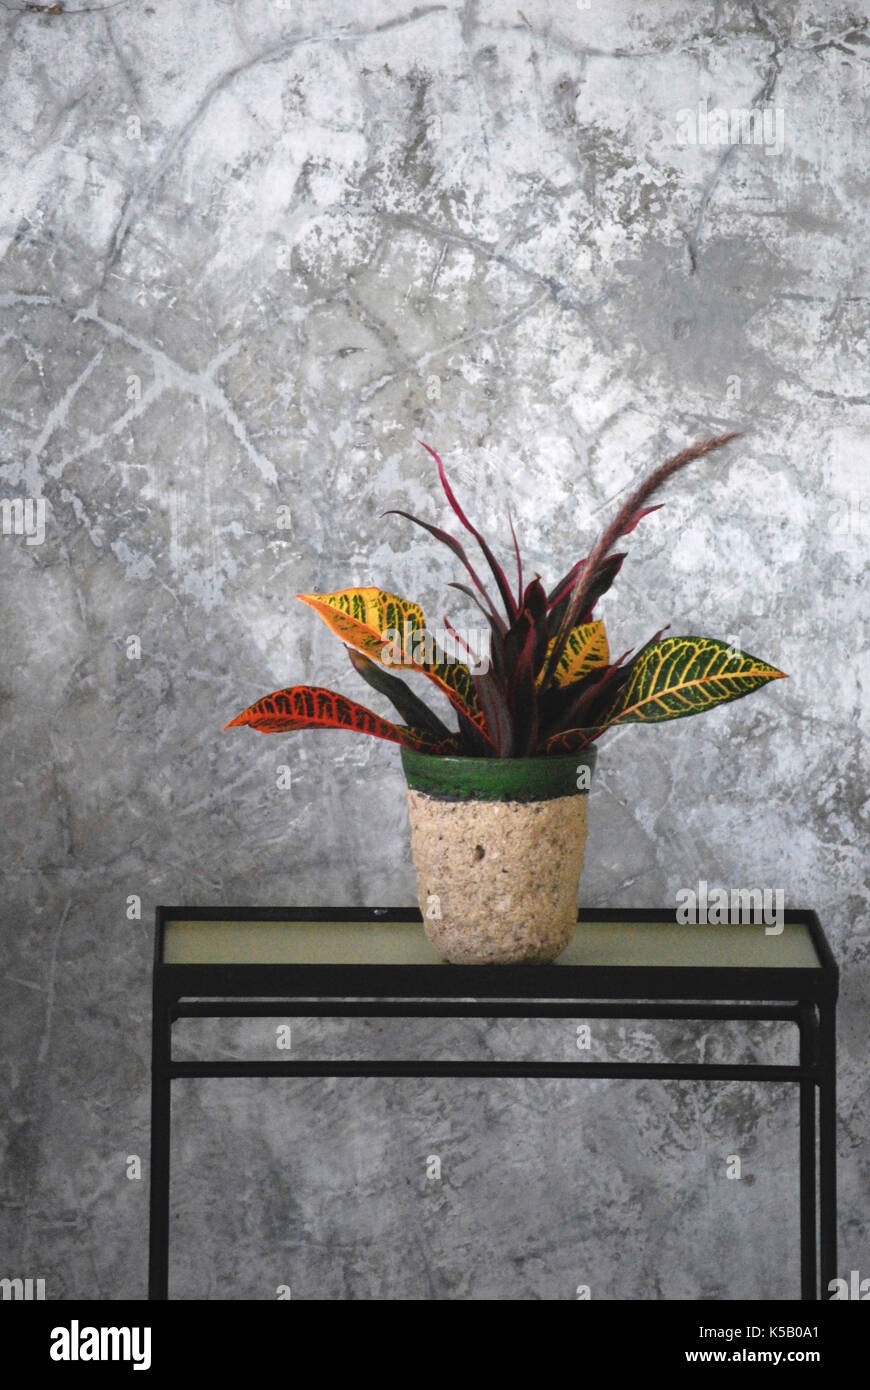 Interior Exotic Floral Arrangement sits on a table against a concrete wall - Yelapa, Mexico Stock Photo